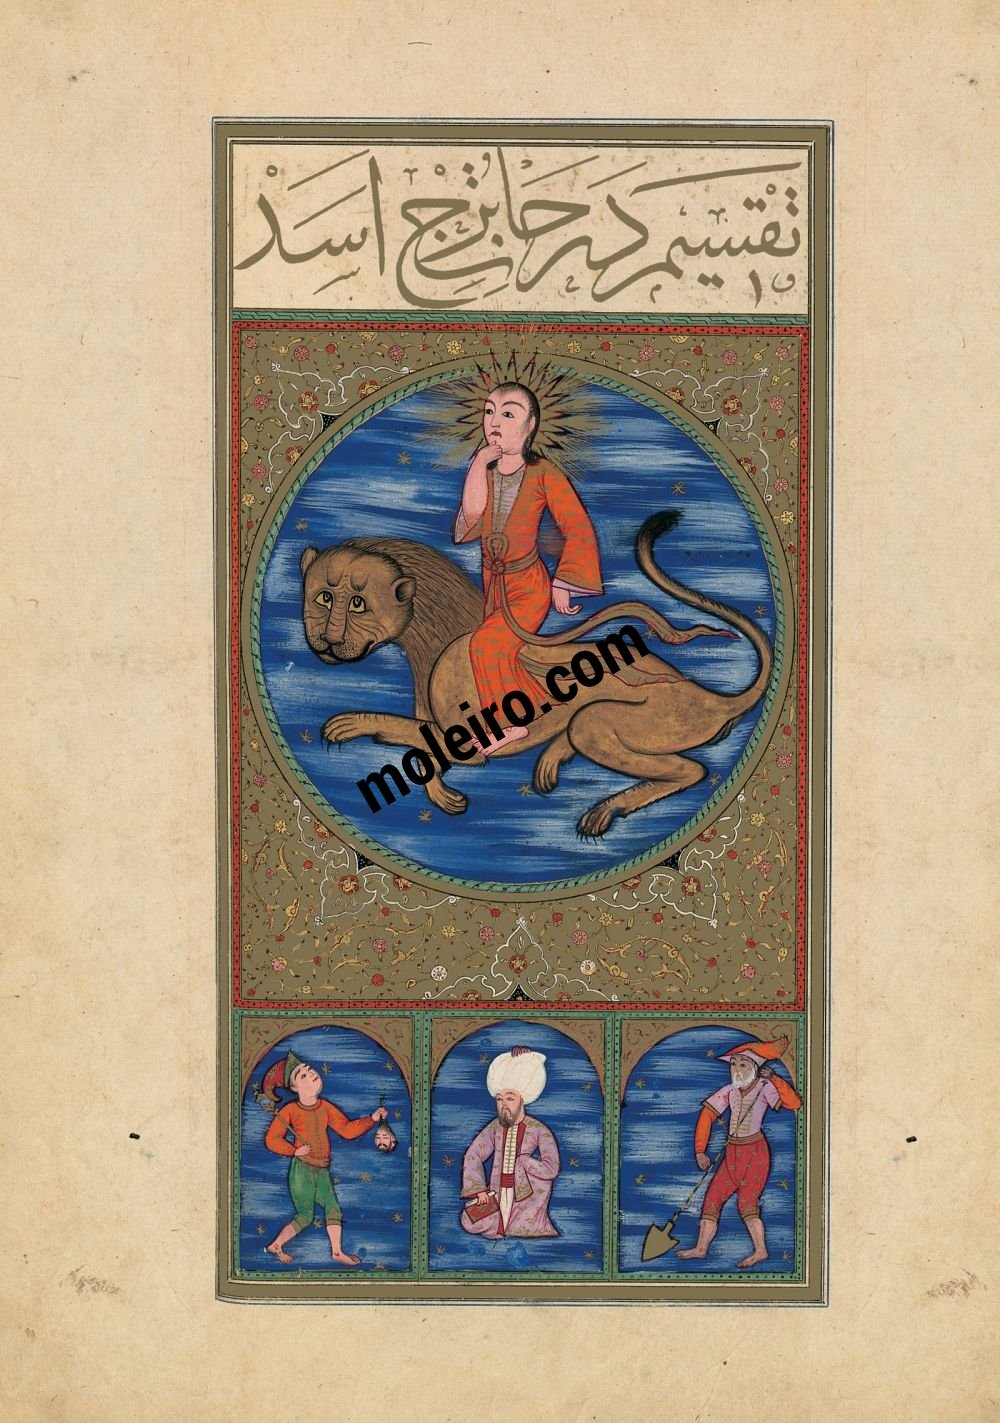 The Book of Felicity f. 16v, The Image of Leo